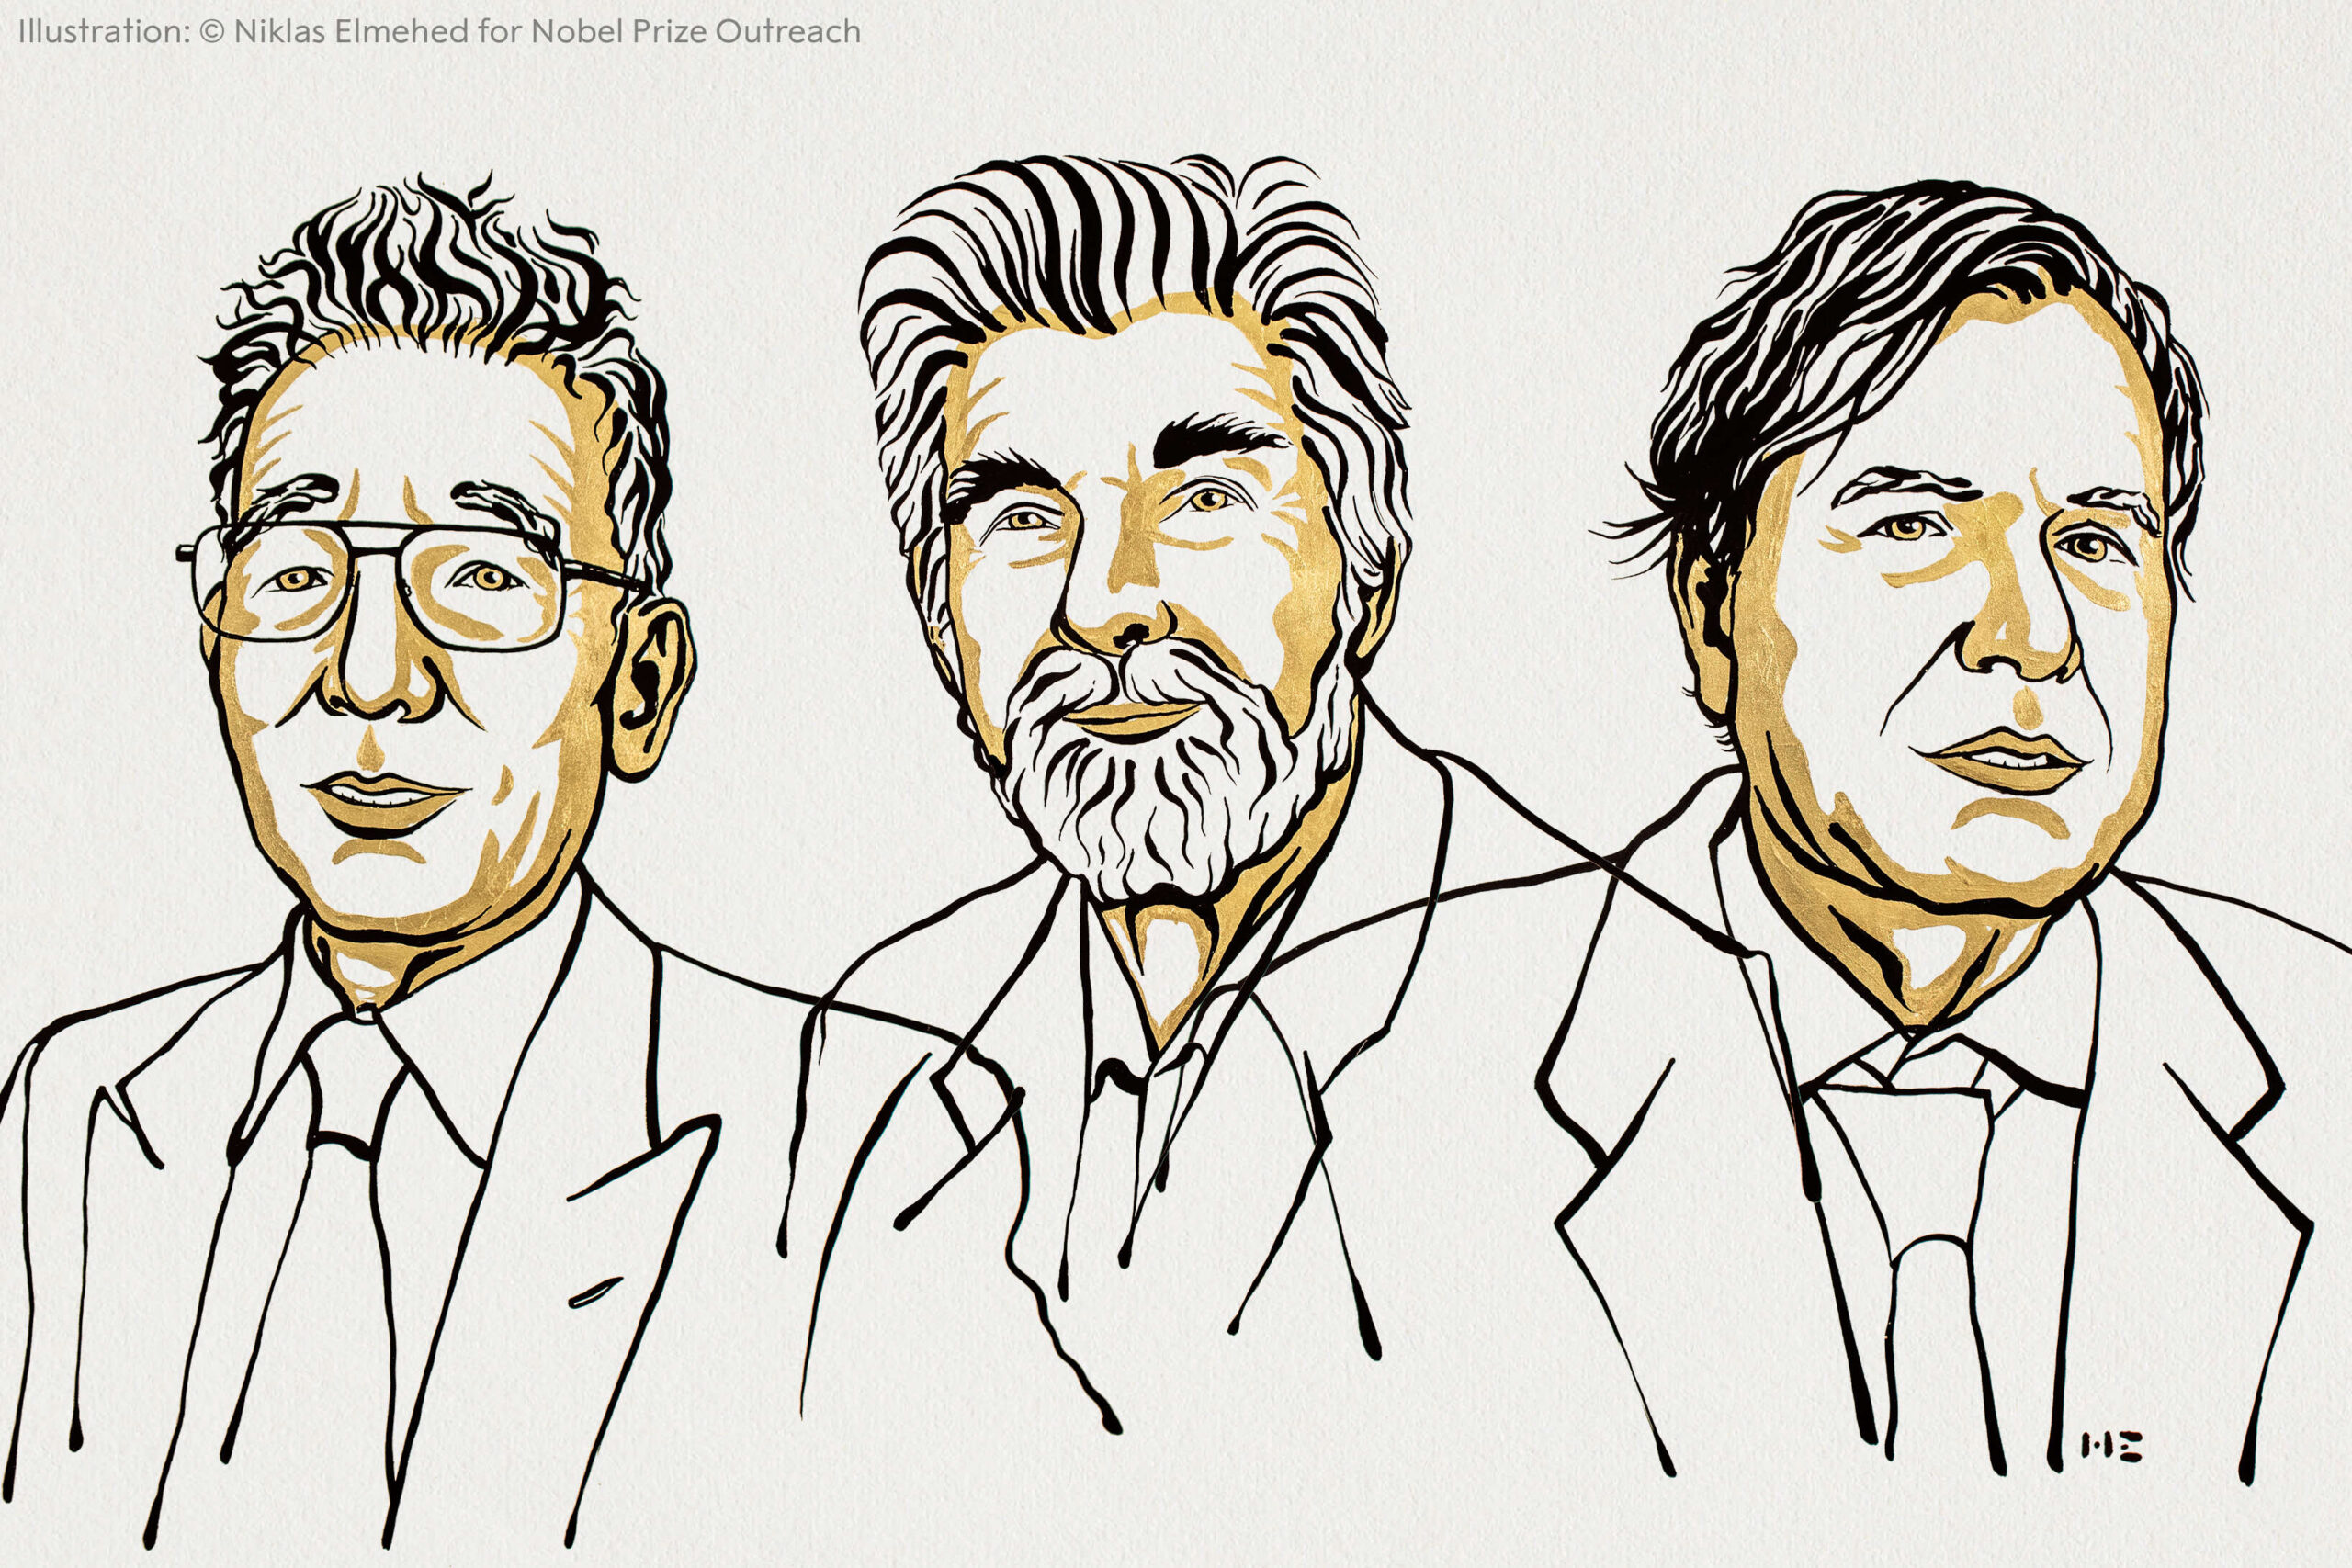 Line drawing of the three winners of the 2021 Nobel Prize in Physics